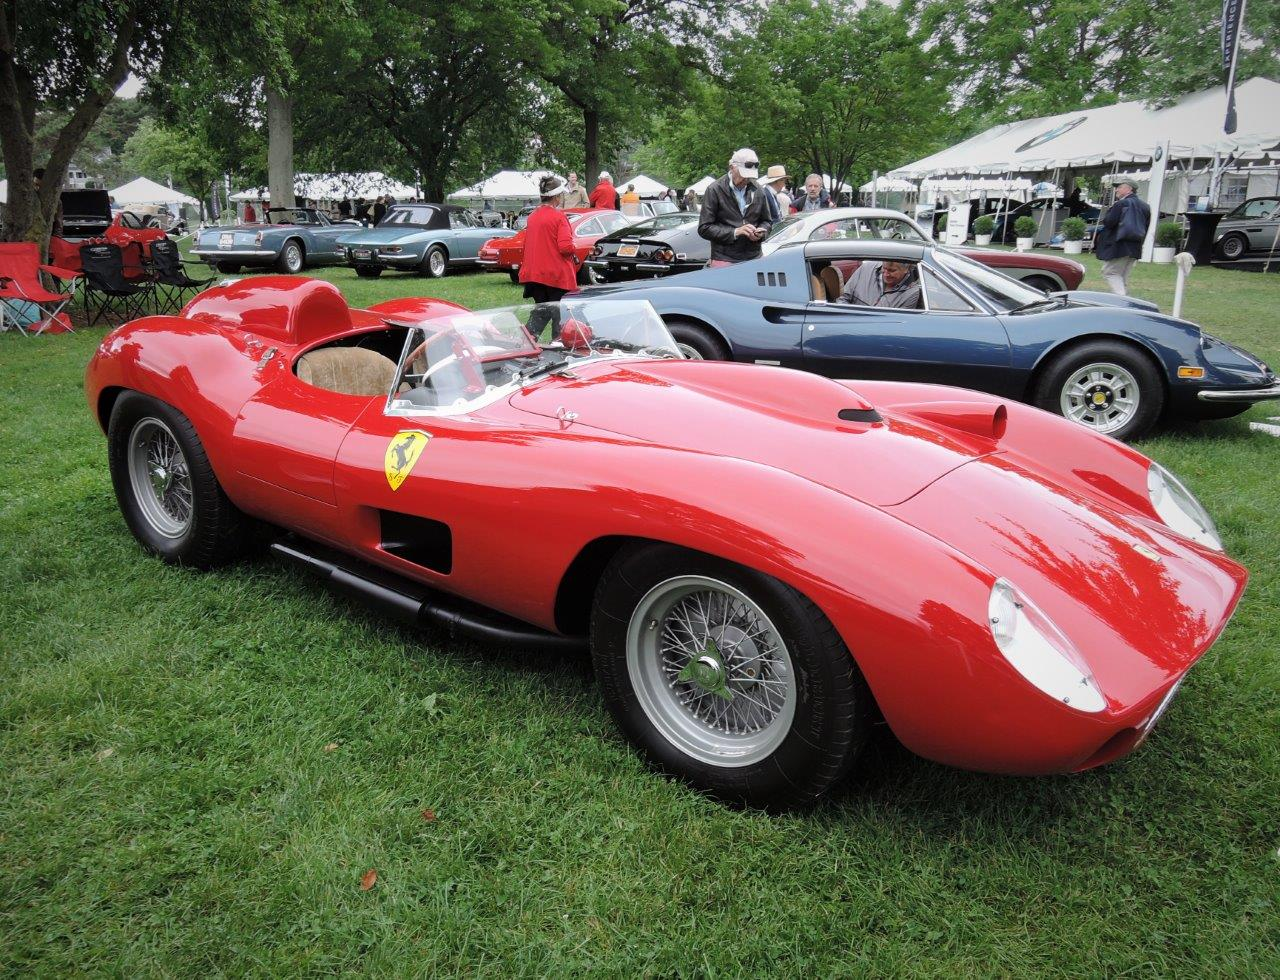 red 1957 Ferrari 335 Sport Spider Scaglietti - 2018 Greenwich Concours International